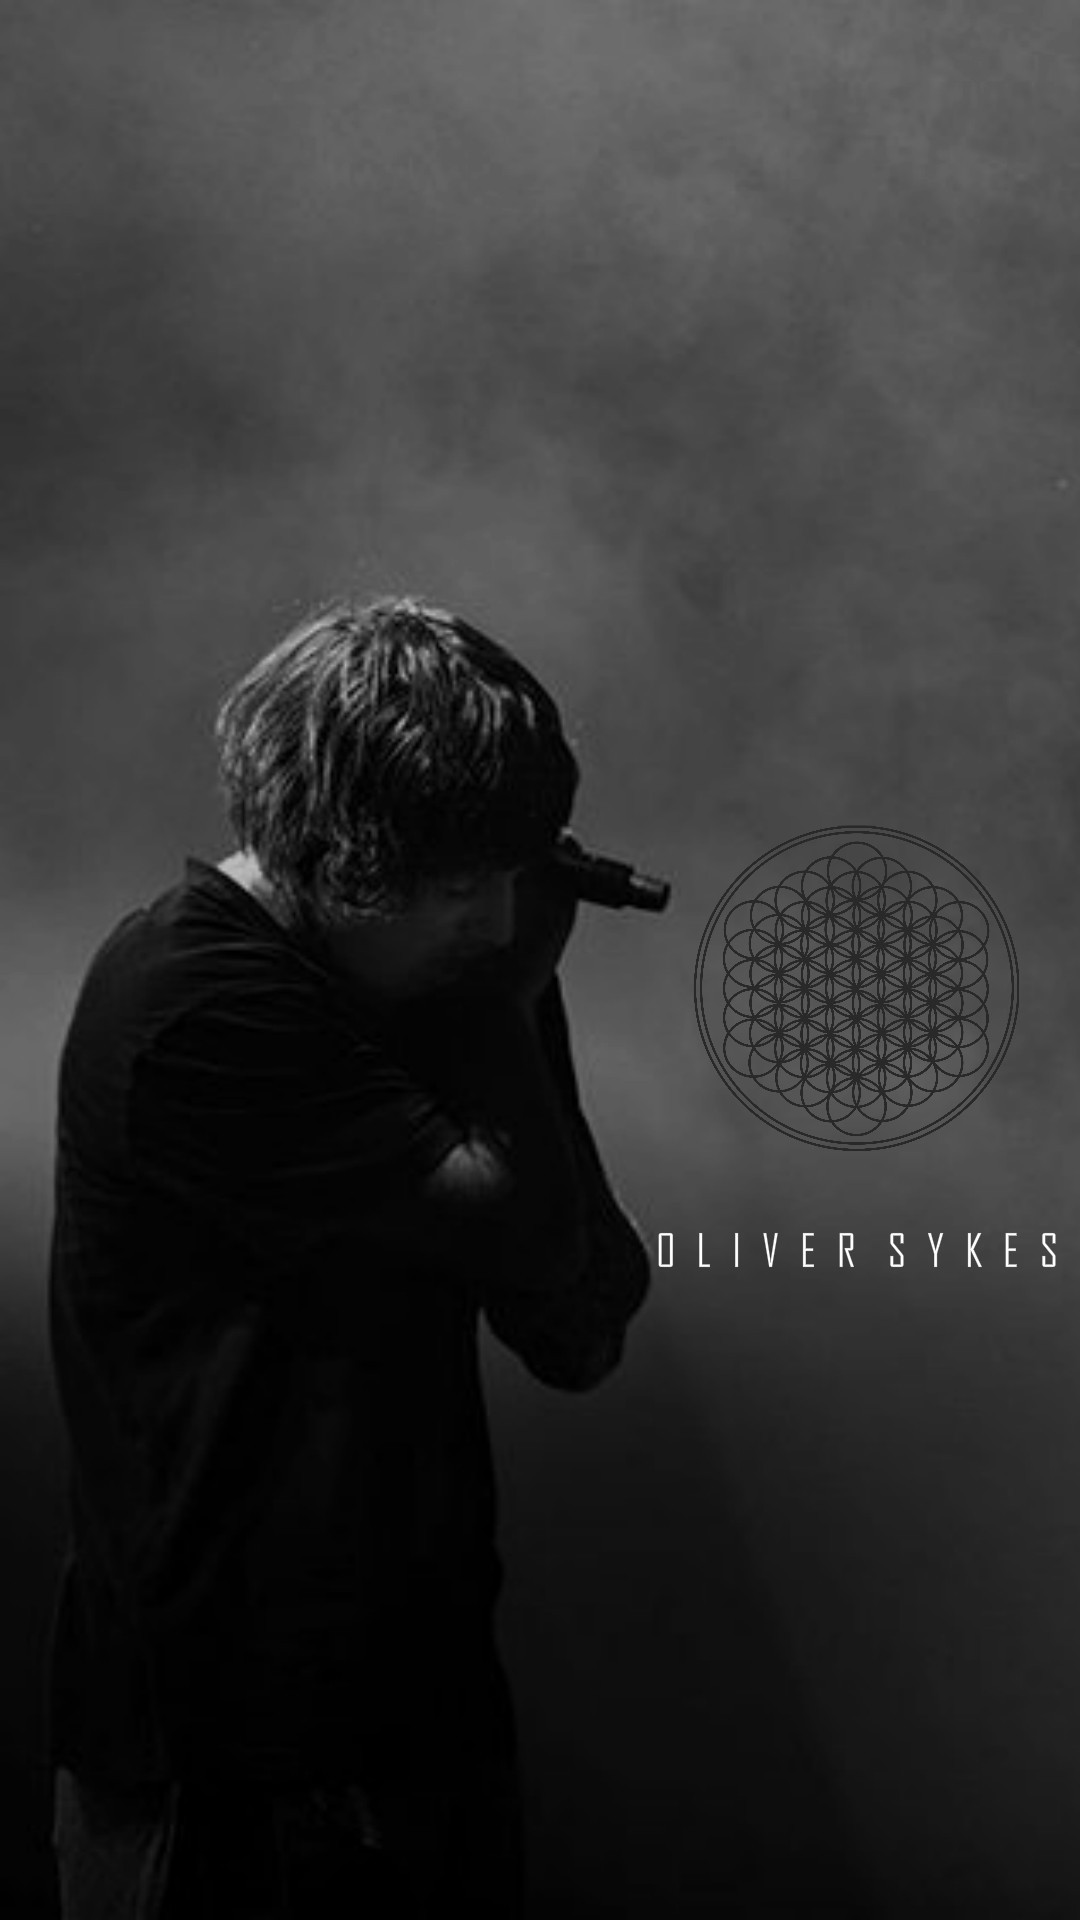 Bmth Requested Oliver Sykes Bring Me The Horizon Bringmethehorizon Oliver Sykes Wallpaper Hd 1080x1920 Download Hd Wallpaper Wallpapertip